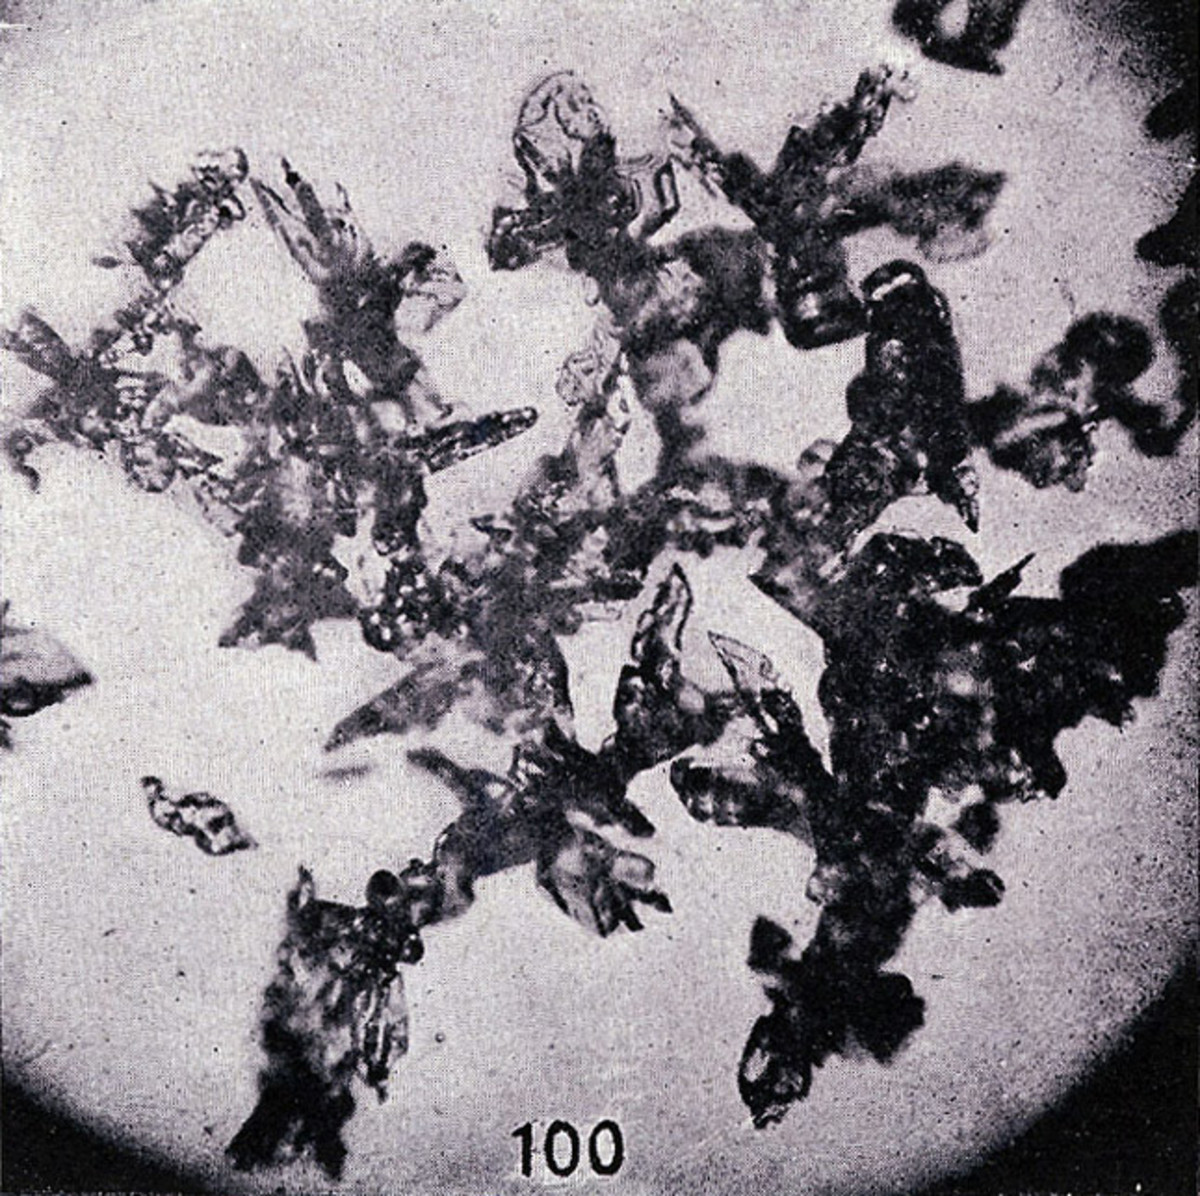 Irregular crystals: Usually full or half-formed crystals that were damaged on their way to the ground.